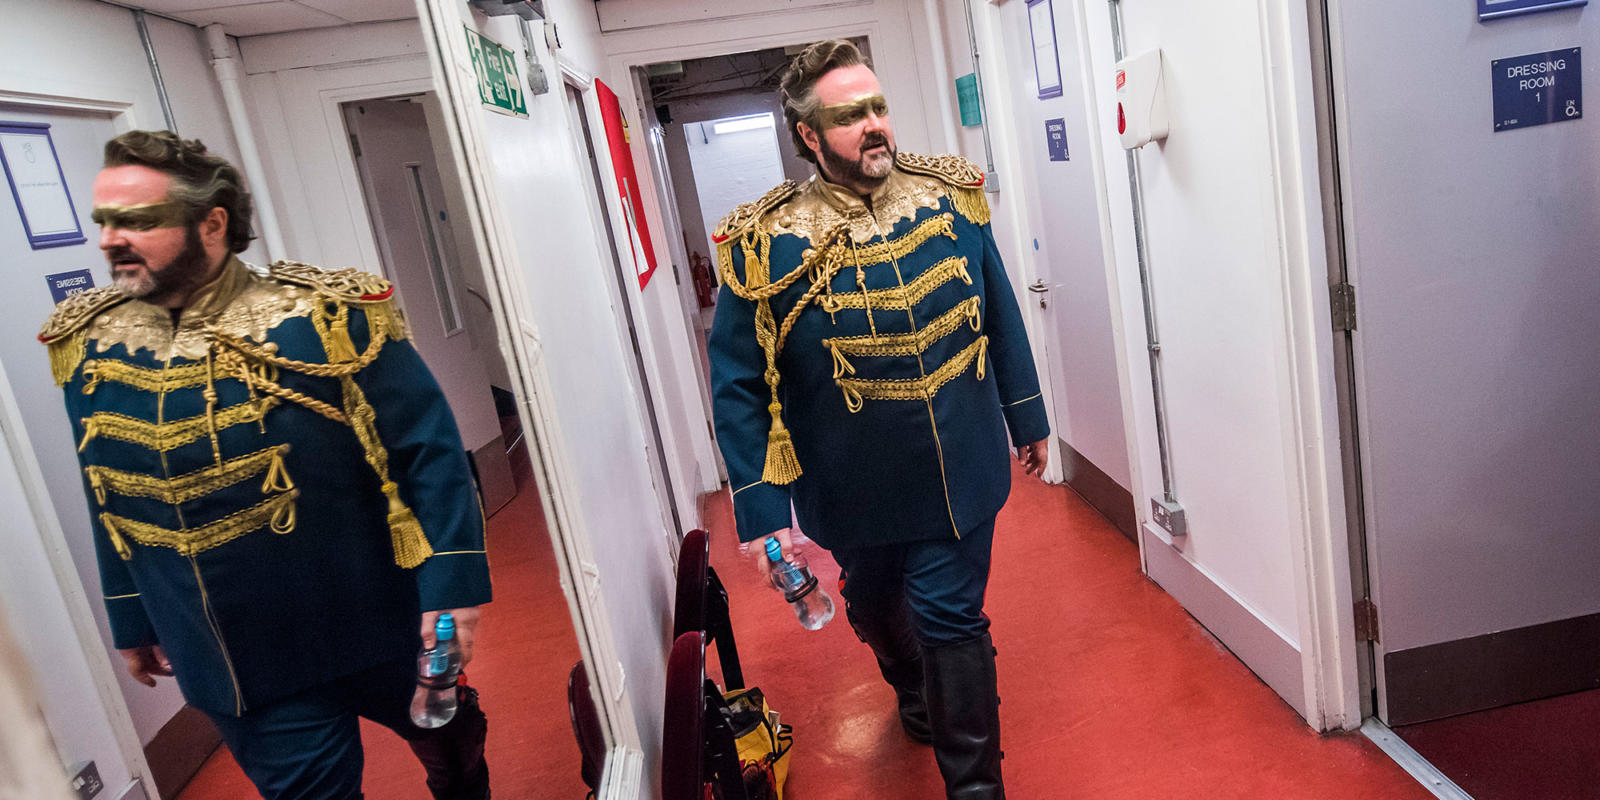 Gwyn Hughes Jones in full costume on his way to sing the role of Radames (c) Tristam Kenton